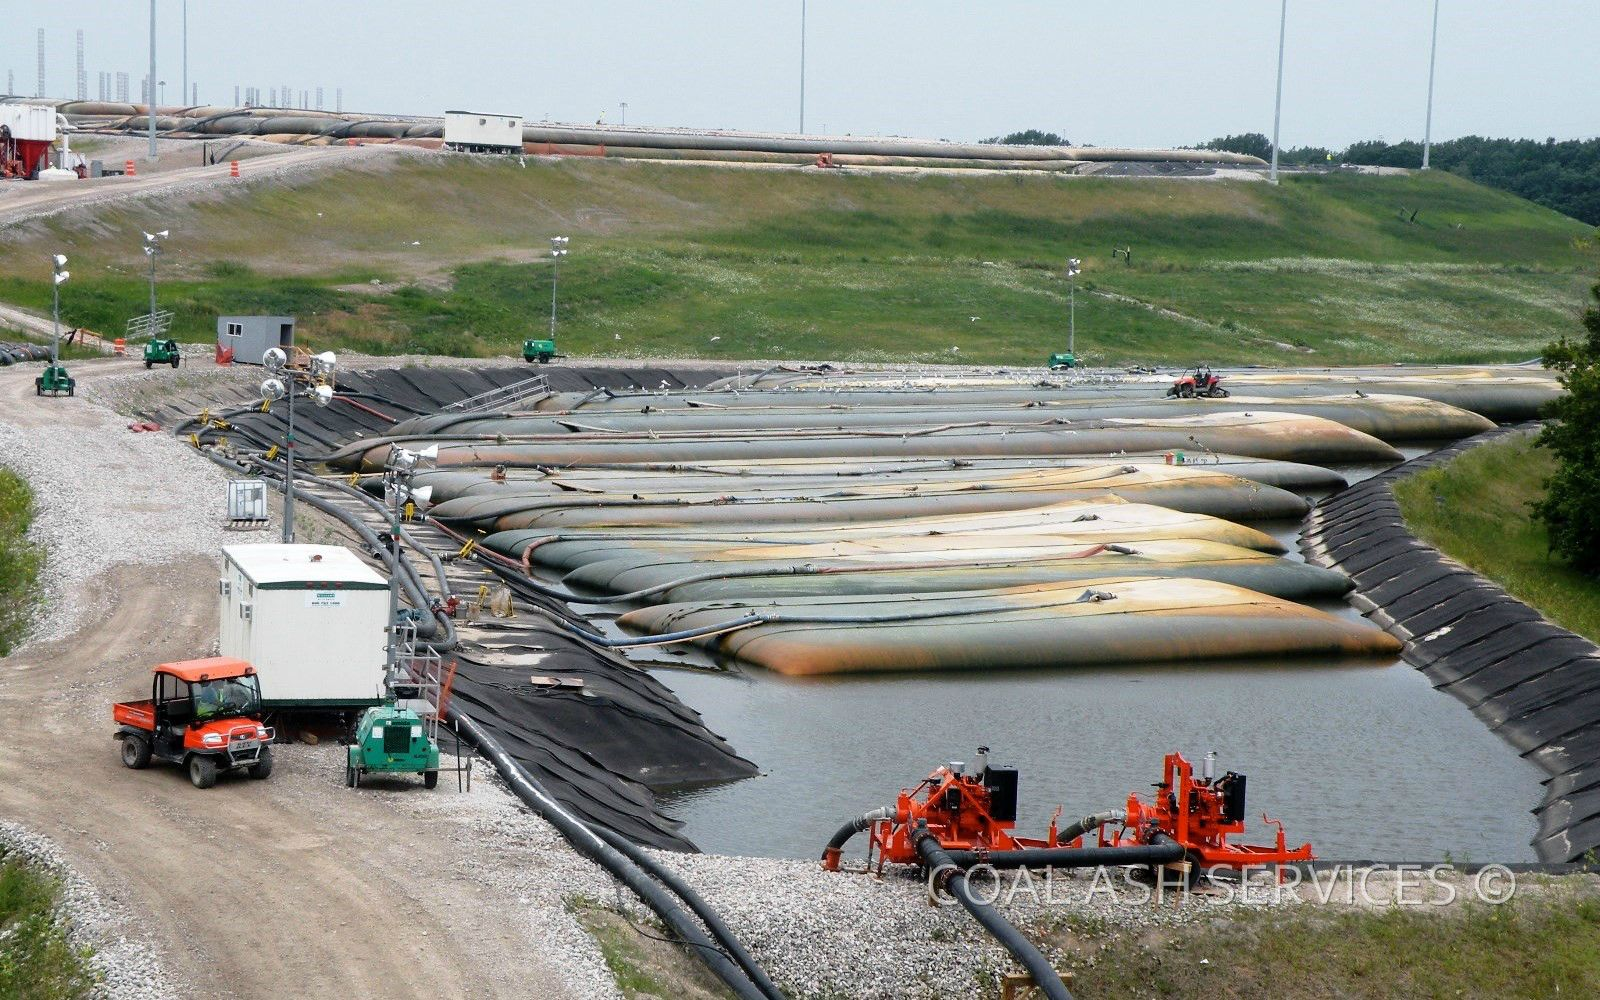 In-landfill geotextile tube dewatering